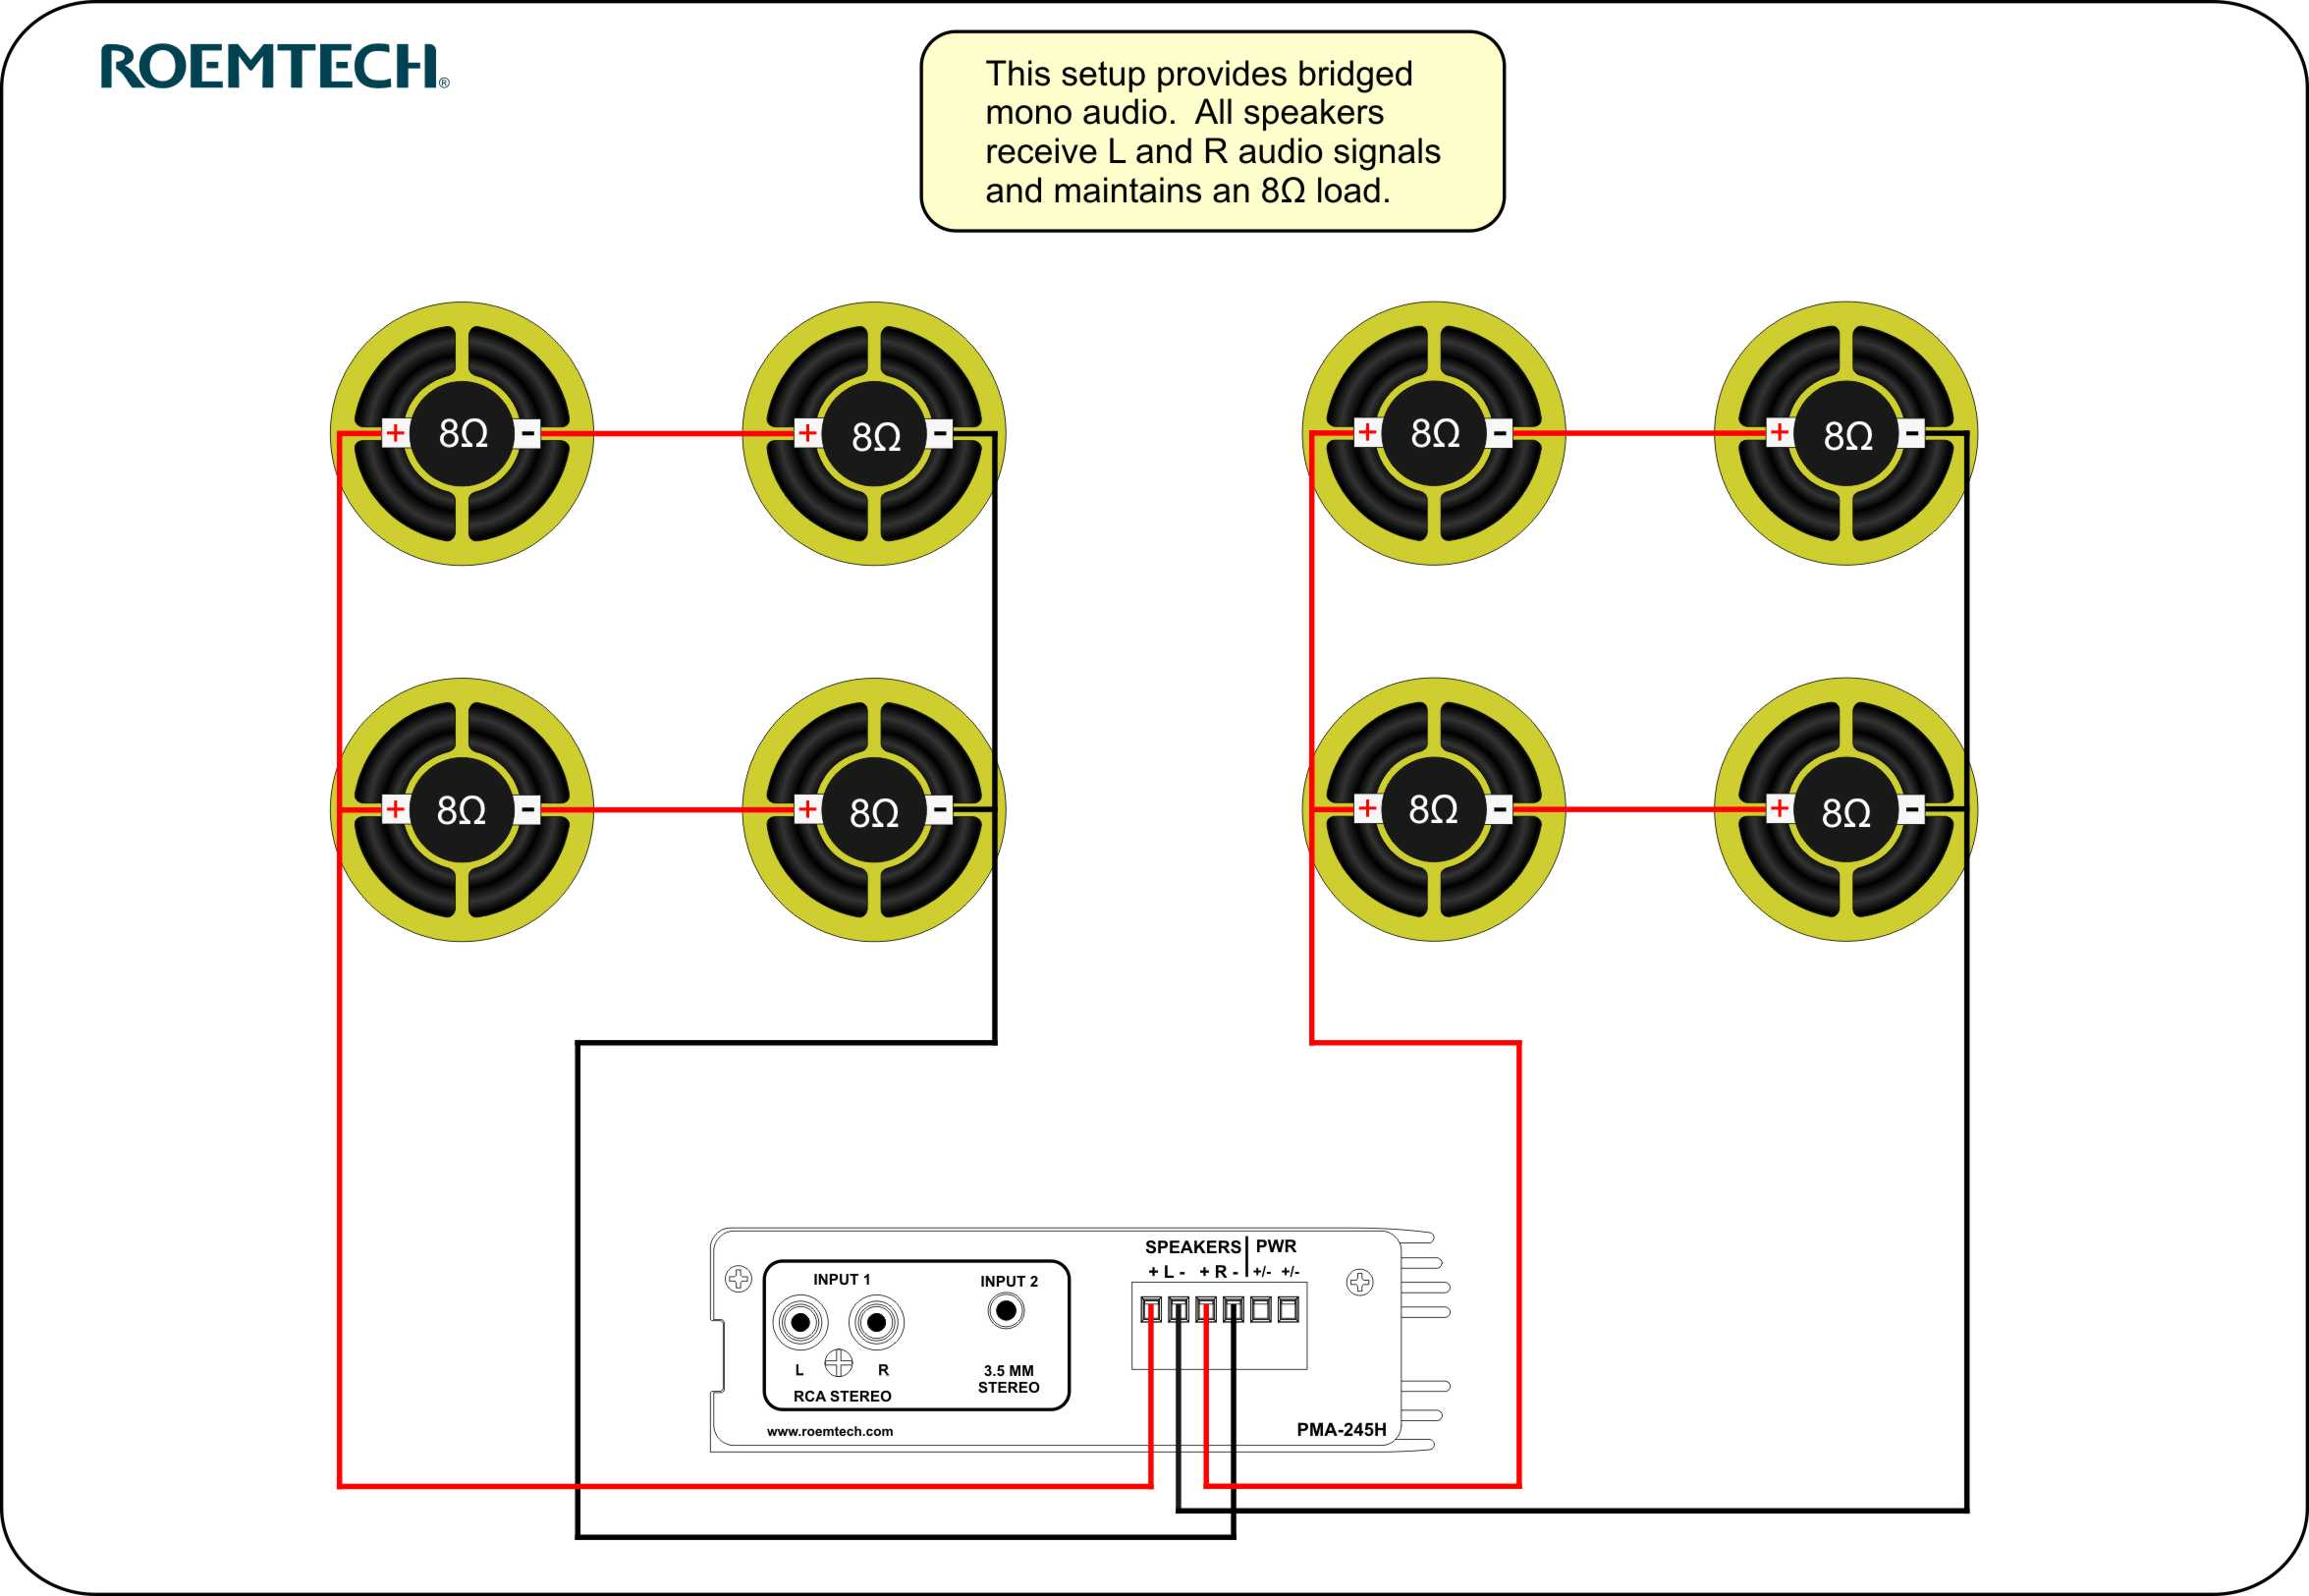 classroom_audio_multiple_speaker classroom audio systems multiple speaker wiring diagram speaker wiring diagram at edmiracle.co